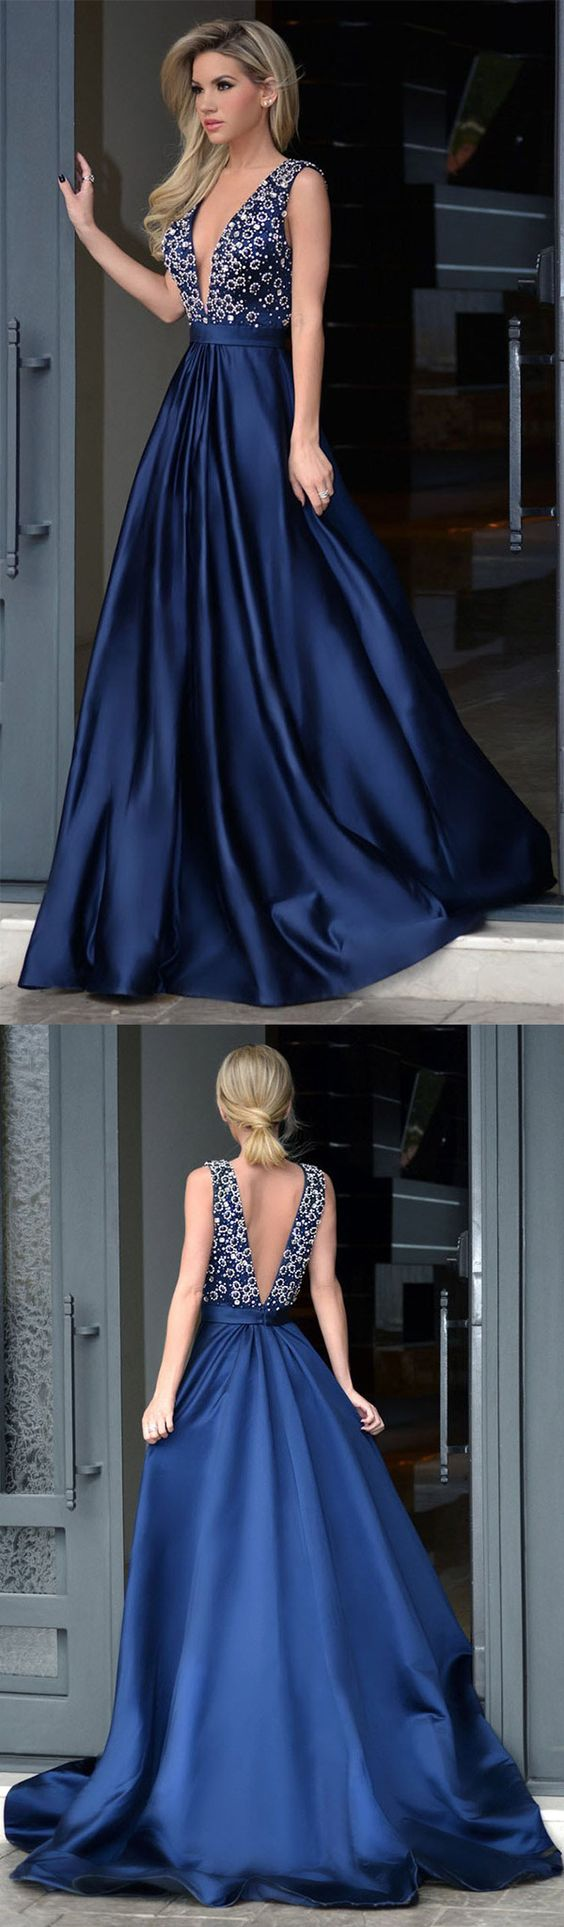 Long Formal Dresses A-line, Royal Blue Prom Dresses, 2018 Party ...